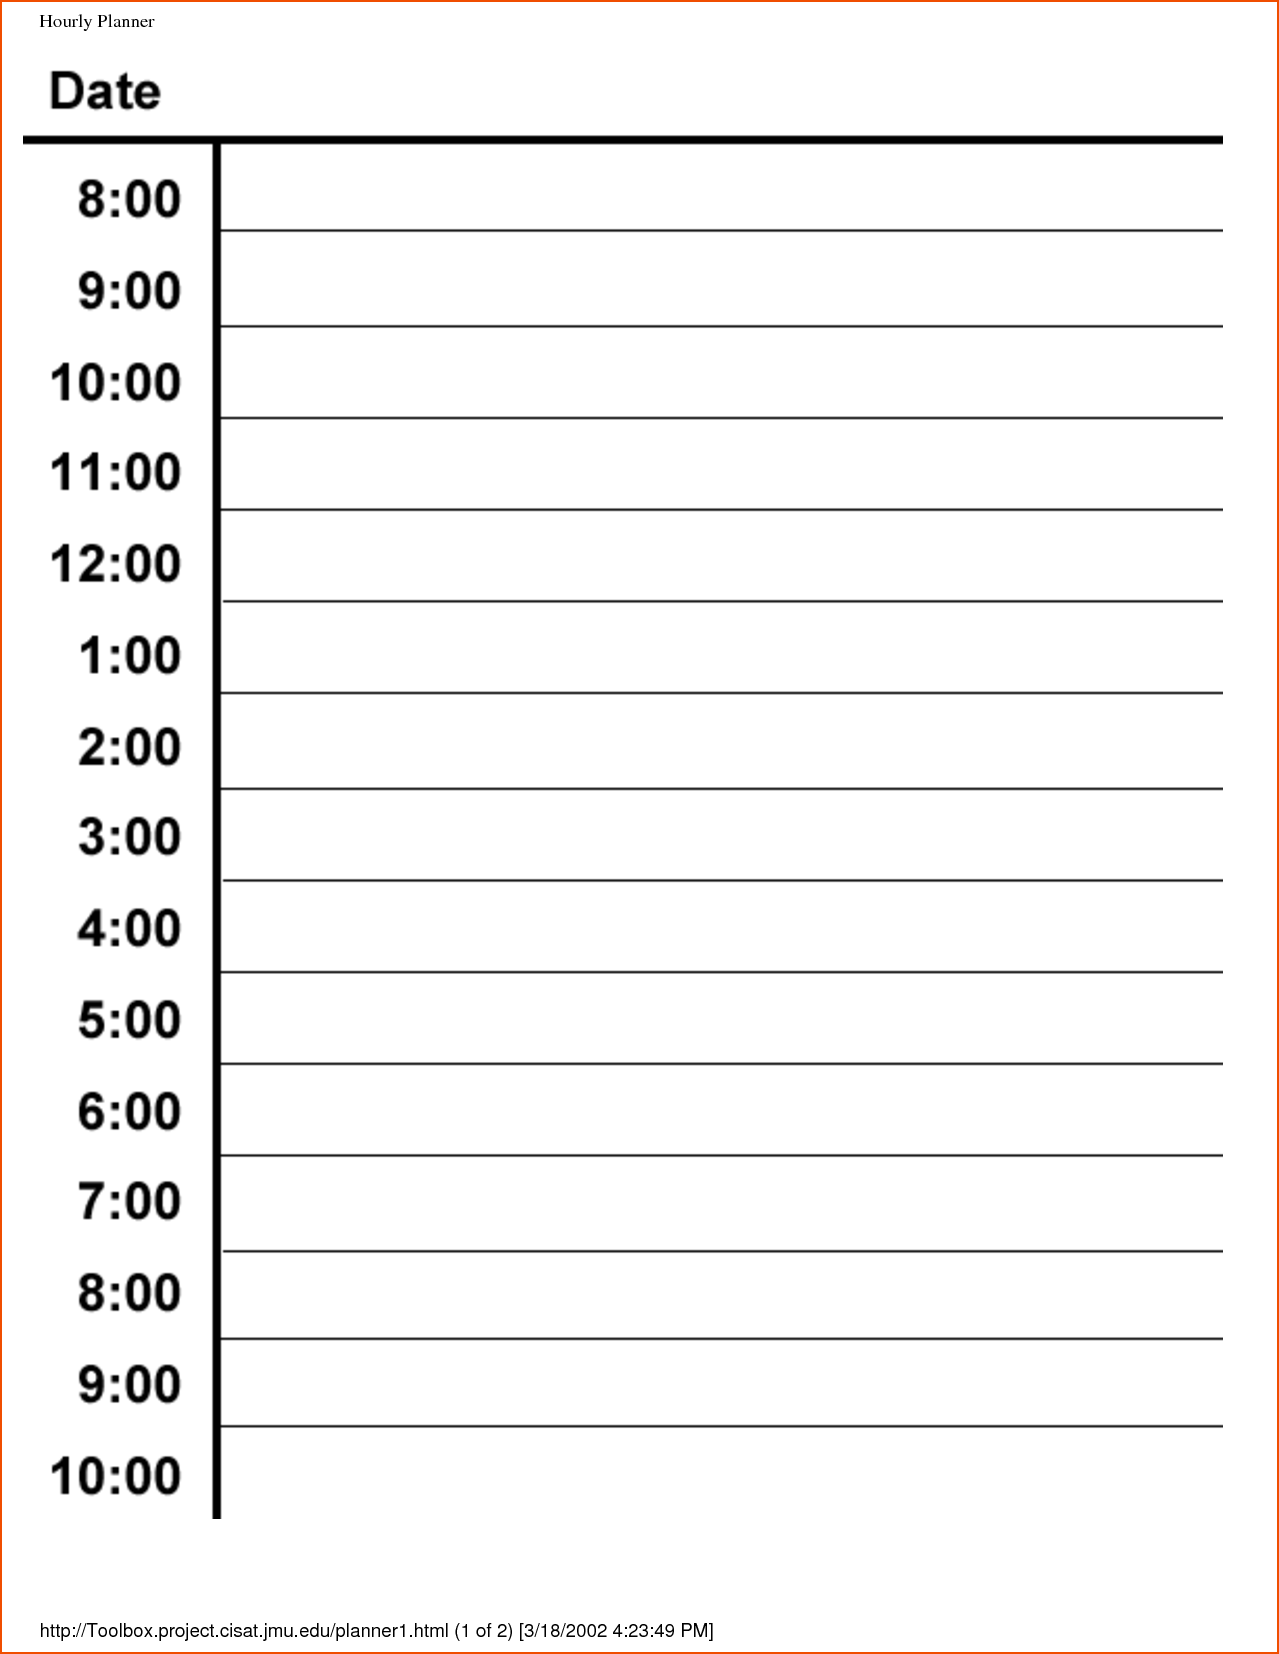 Hourly Calendar Template. Free Download Day Wise Hourly Schedule